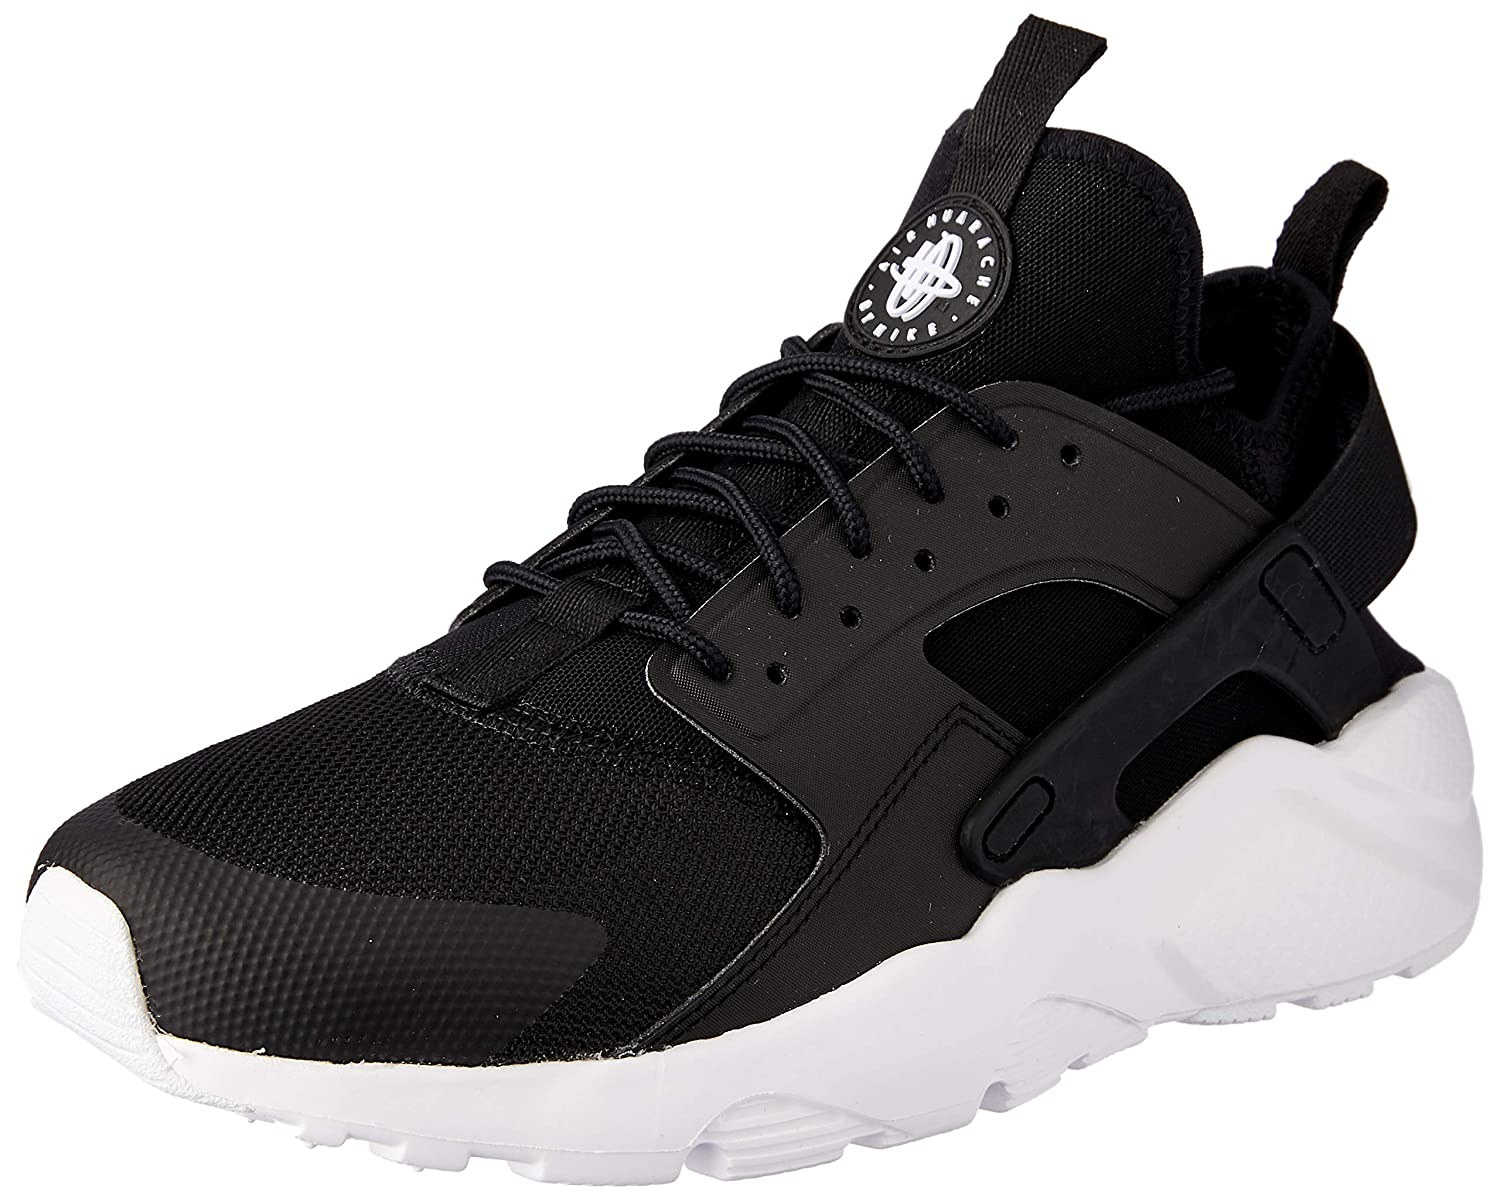 new styles 2ccaa 0b39a Nike Men's Air Huarache Run Ultra Shoes